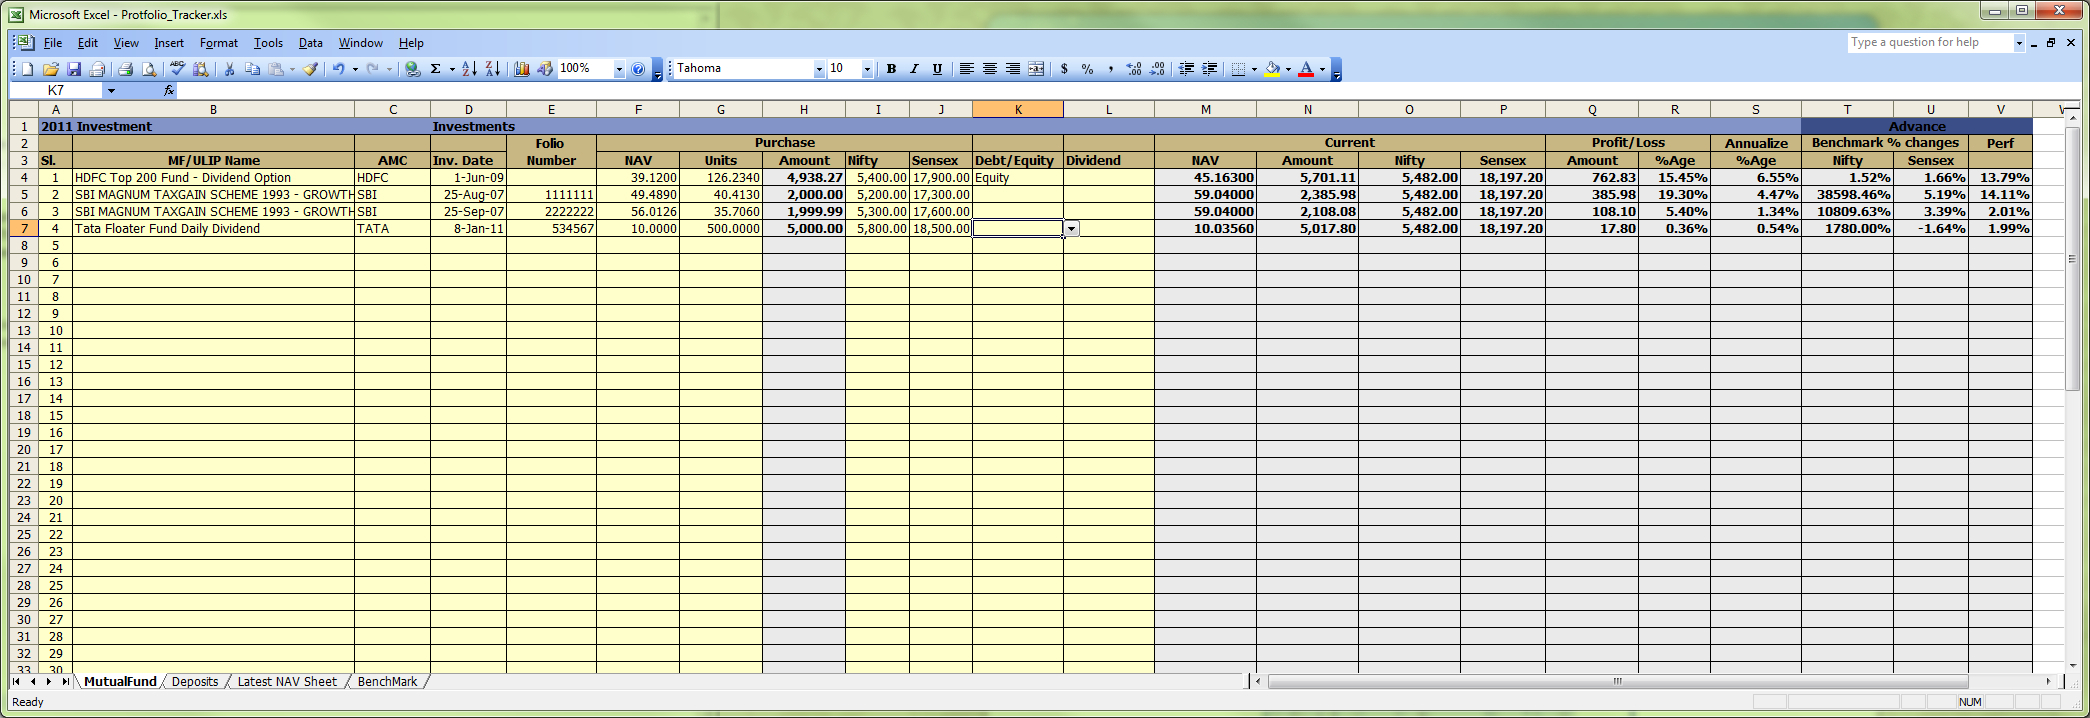 Investment Tracking Spreadsheet Excel Intended For Investment Tracking Spreadsheet Excel As How To Make An Monthly